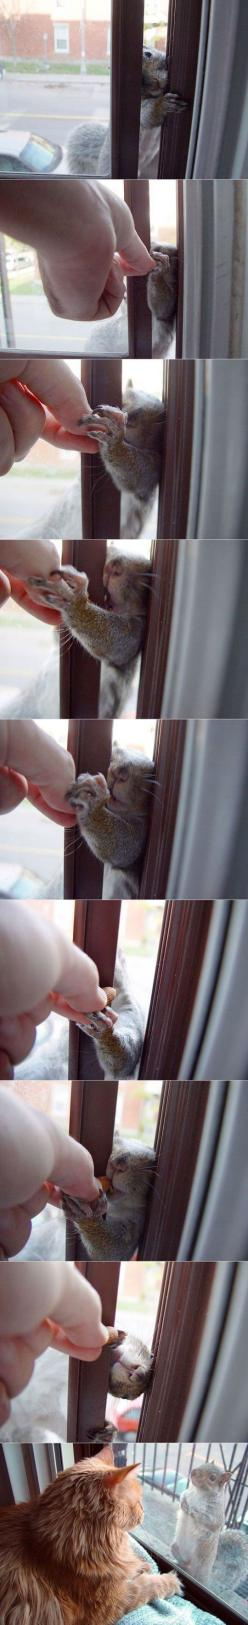 aww:): Animals, Critter, Boo Cat, Funny Cats, Pet, Squirrels Chipmunks, Squirrel Friend, Funny Squirrel Nuts Window